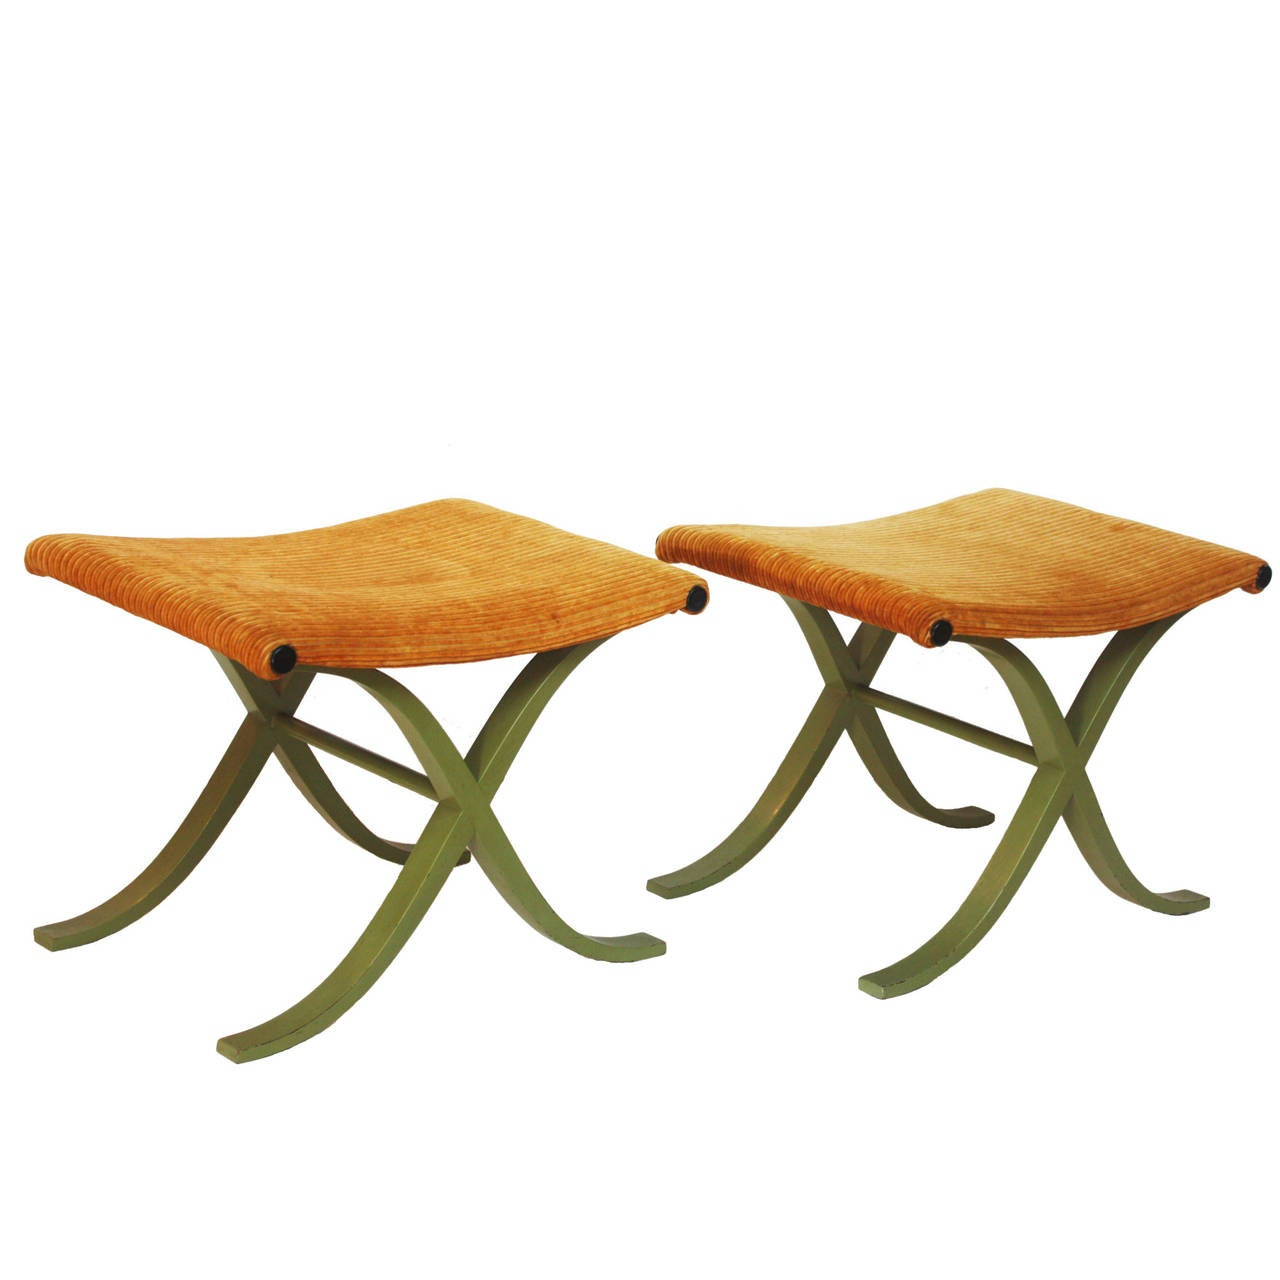 Pair of X-Form Stools by Plycraft, Inc. 1